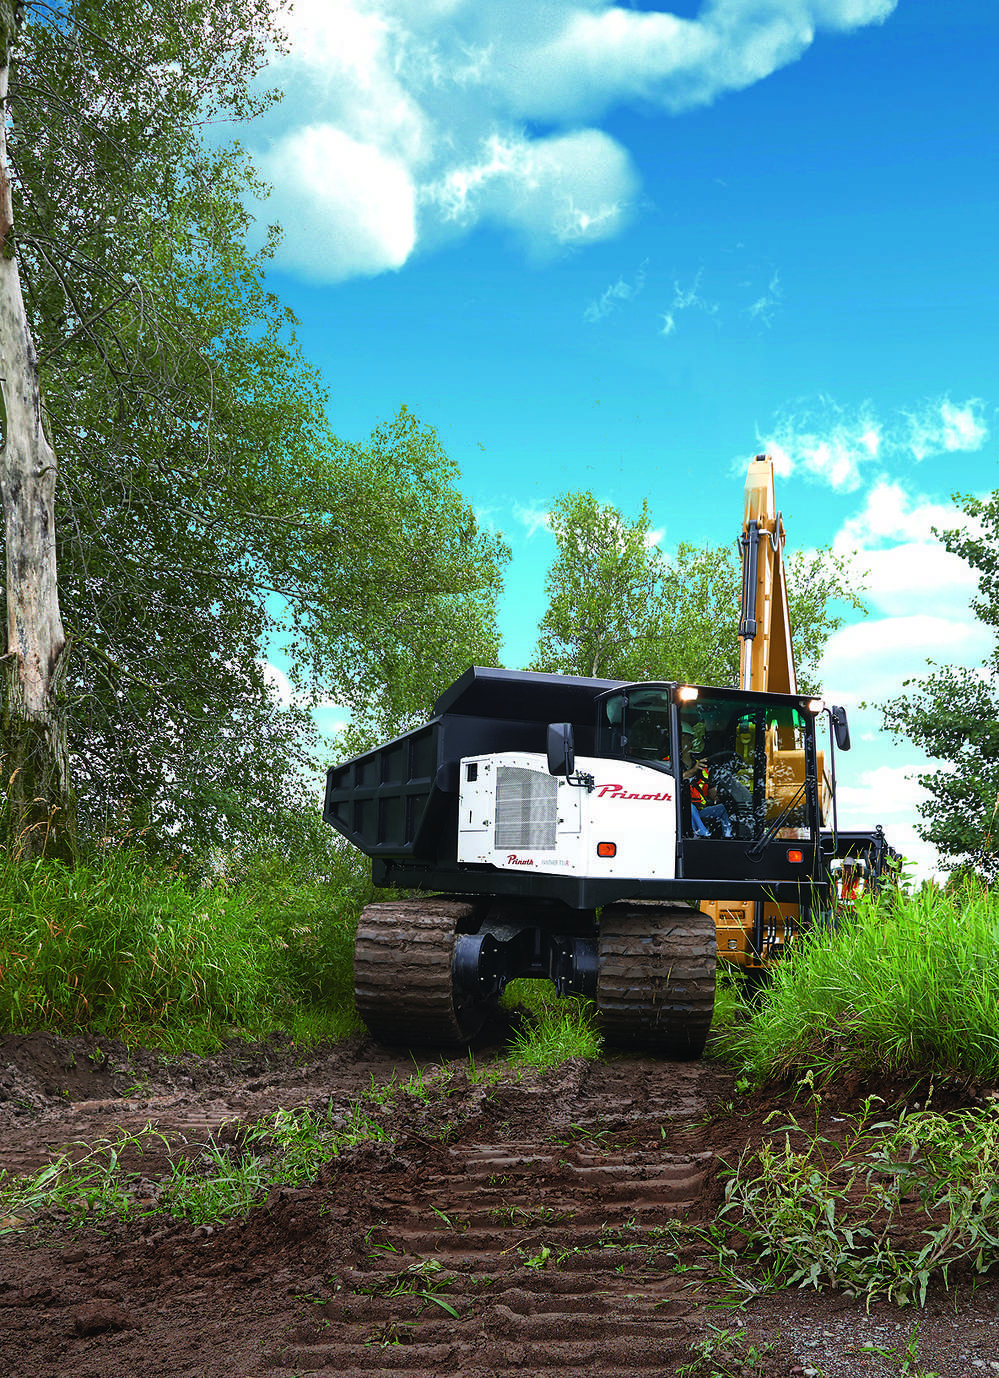 Additional features of the PANTHER T14R include a ROPS/FOPS certified cab designed for operator safety and comfort.